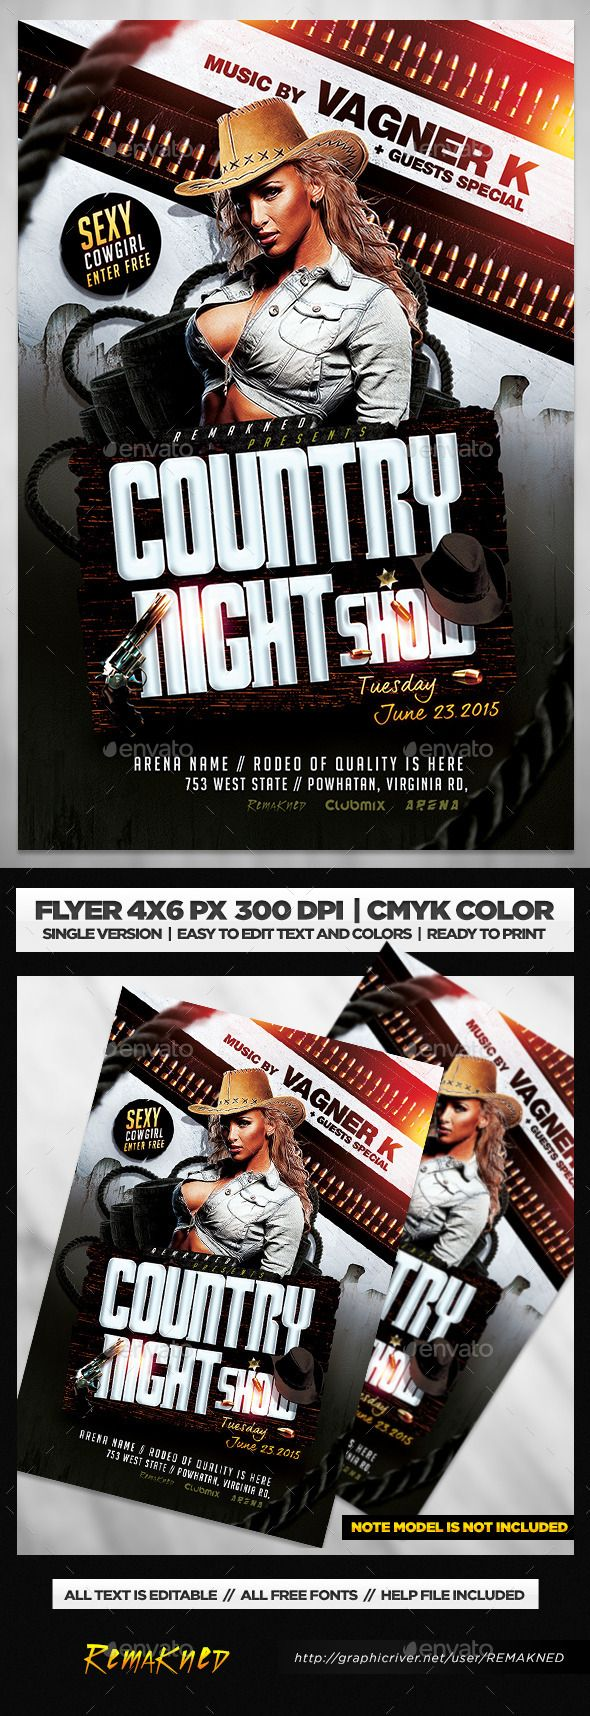 Best Flyers Design Template Psd Images On   Flyer